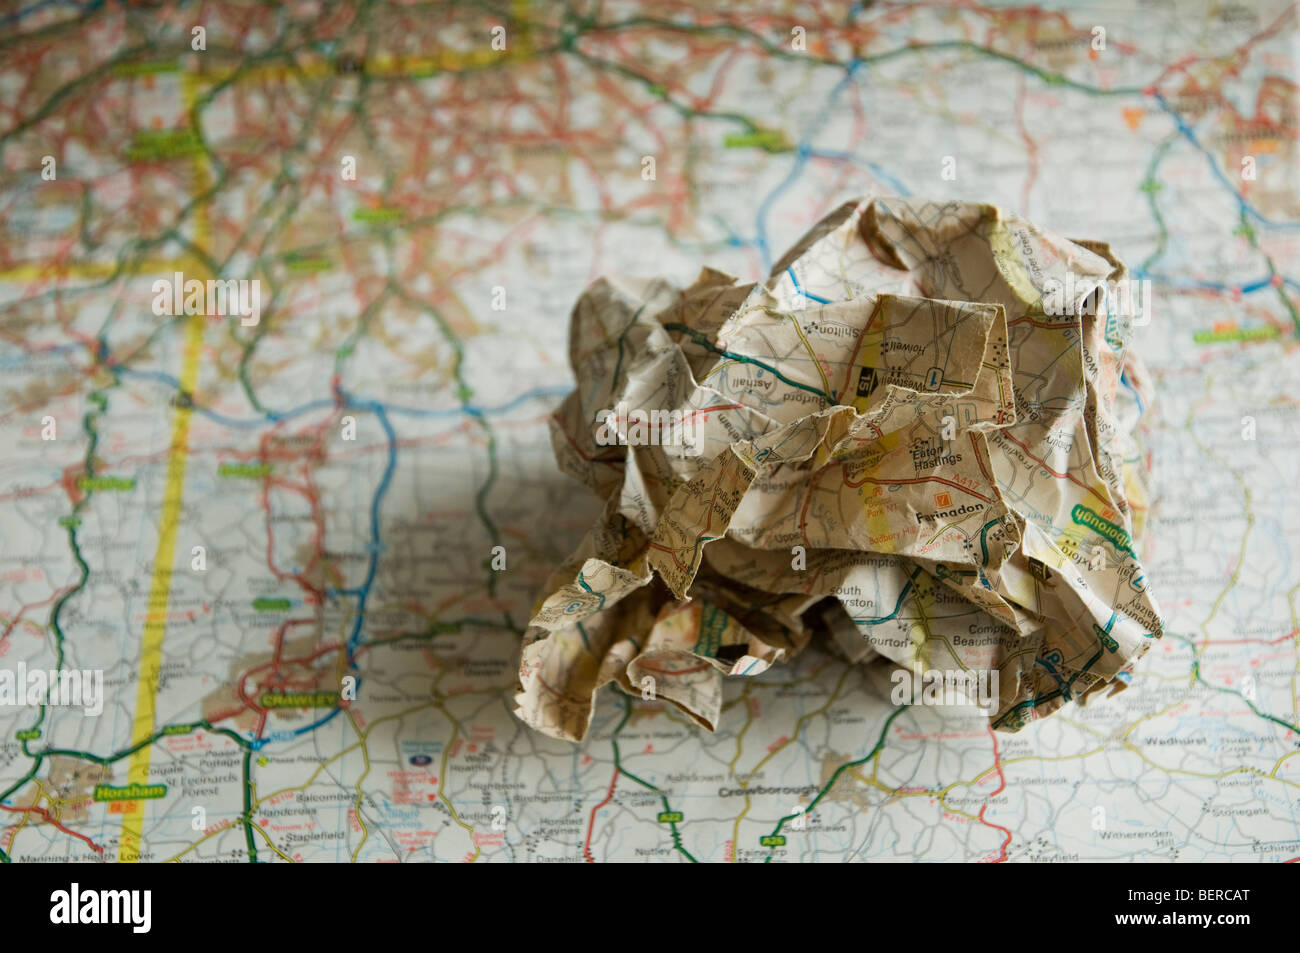 S E England Map.A Scrunched Up Map Placed On A Road Map Of Se England Soft Focus